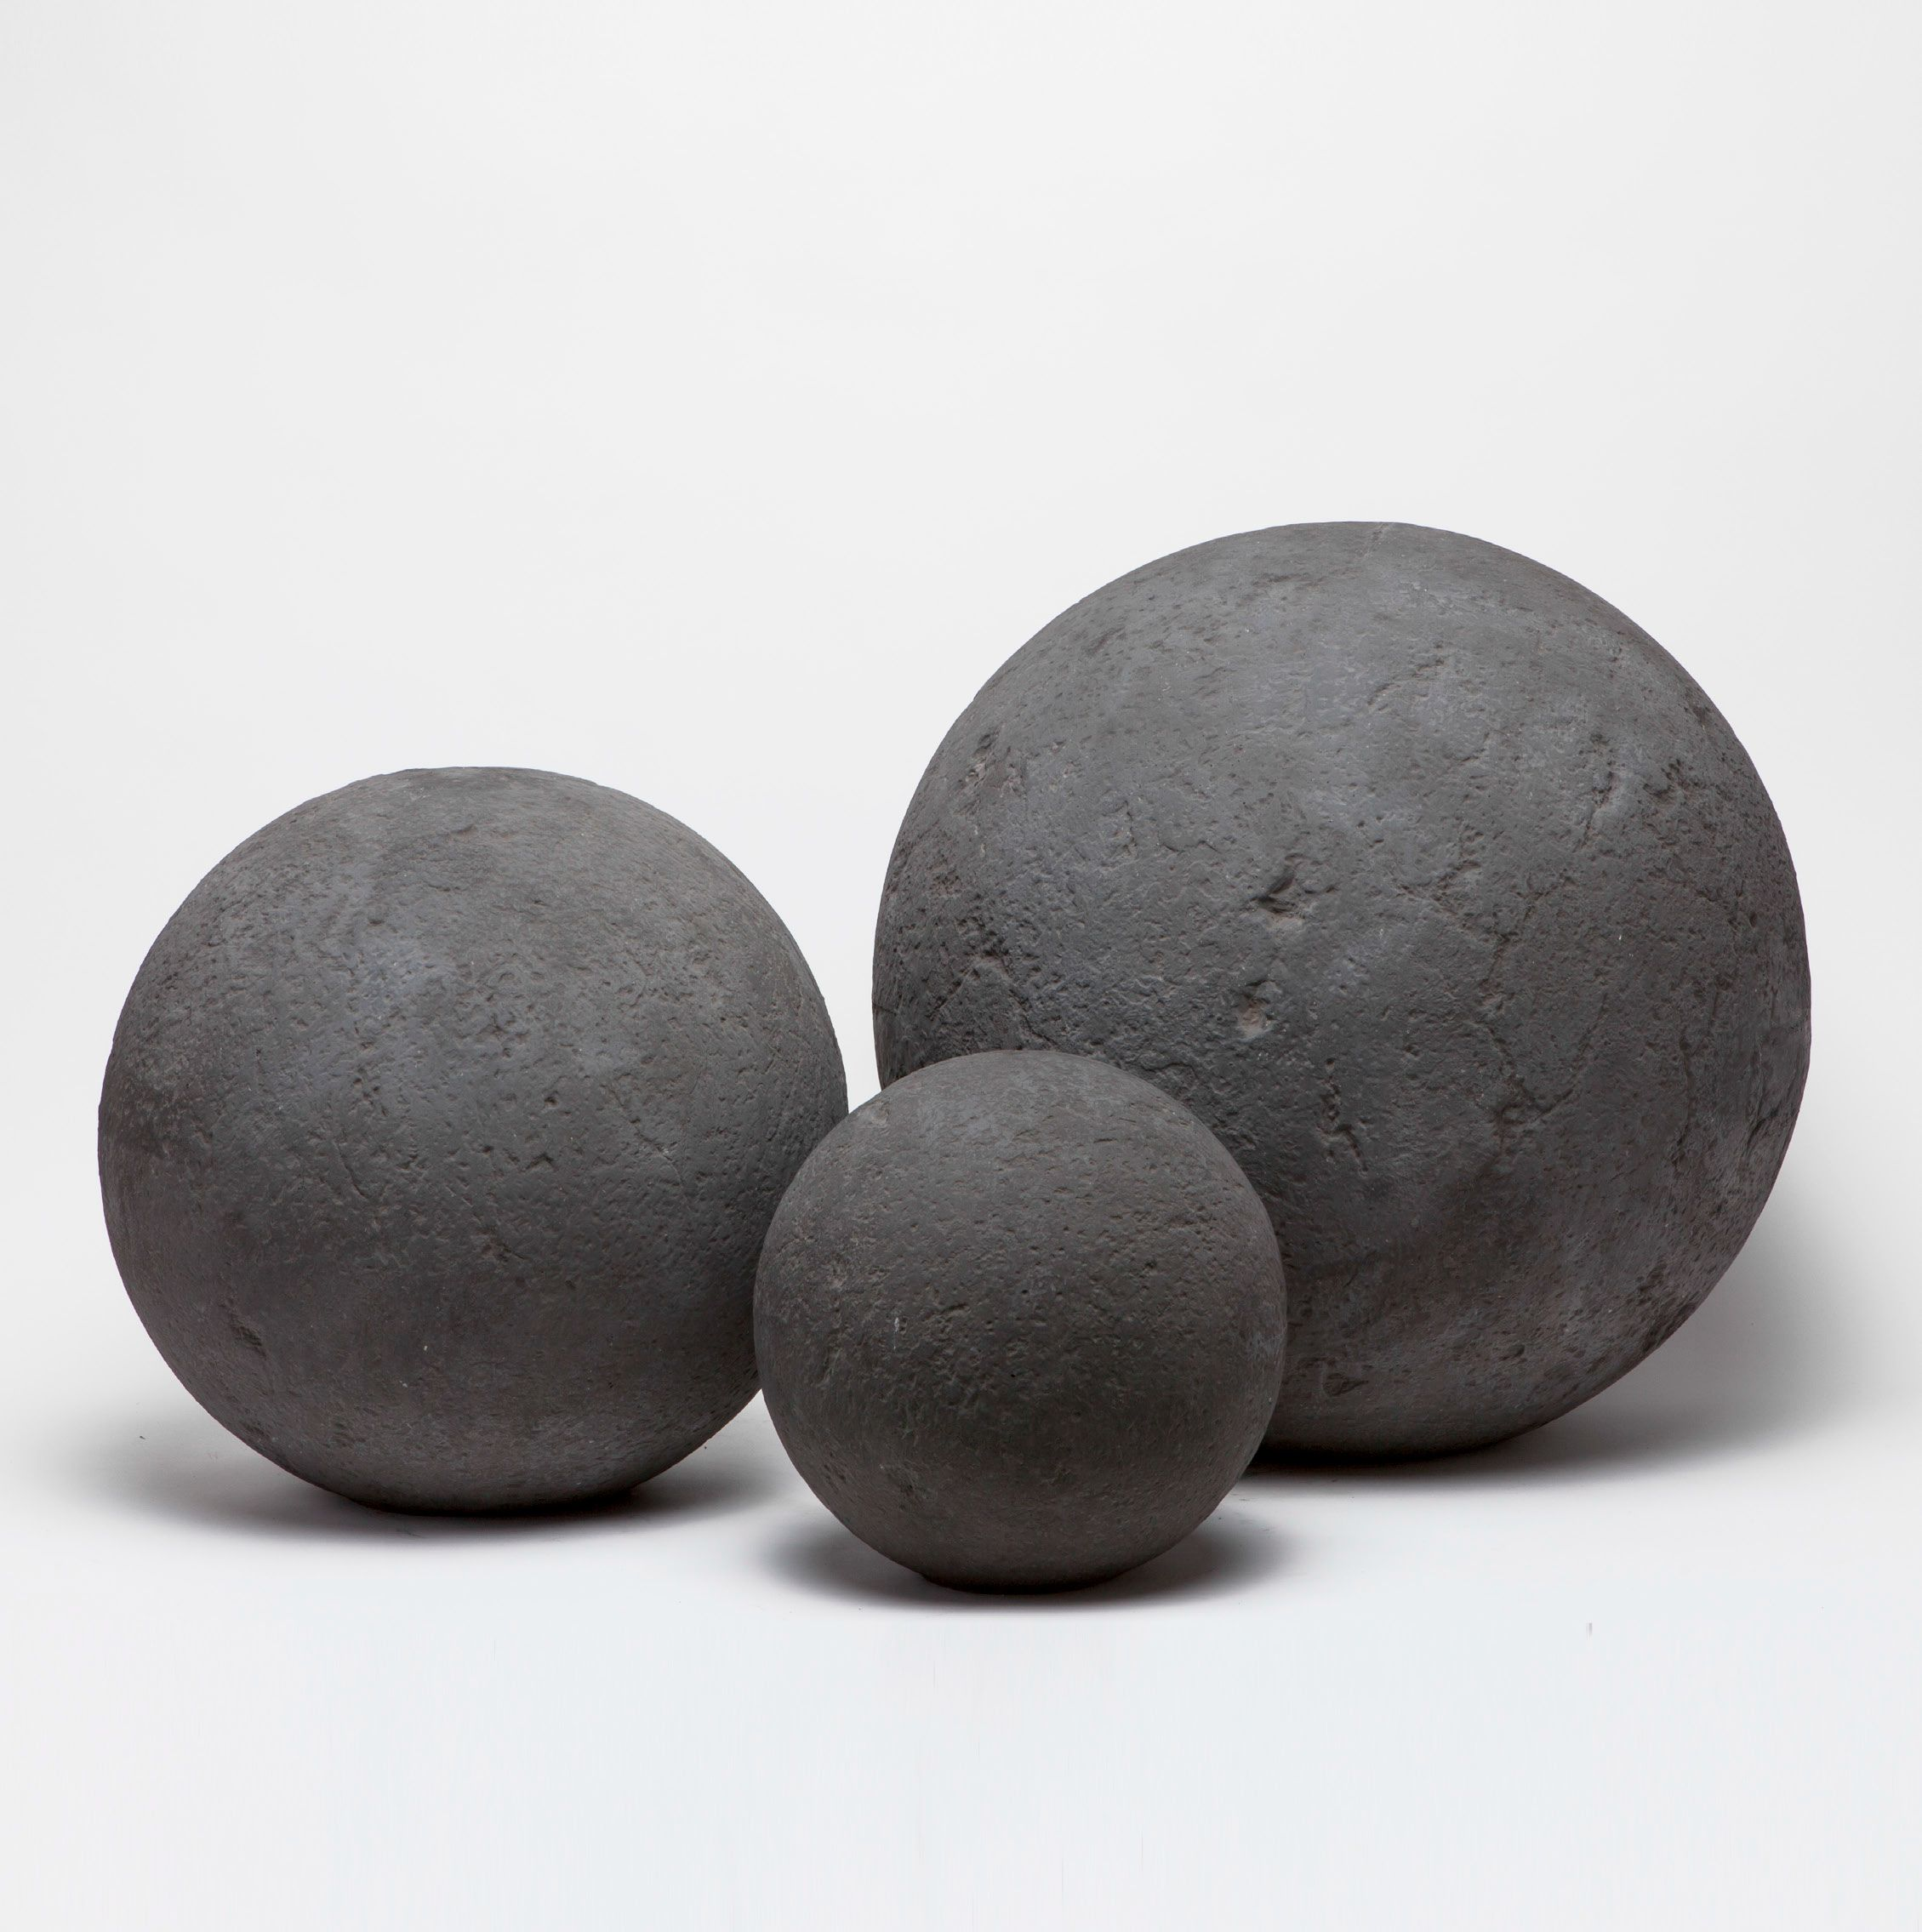 oversized concrete ball objects